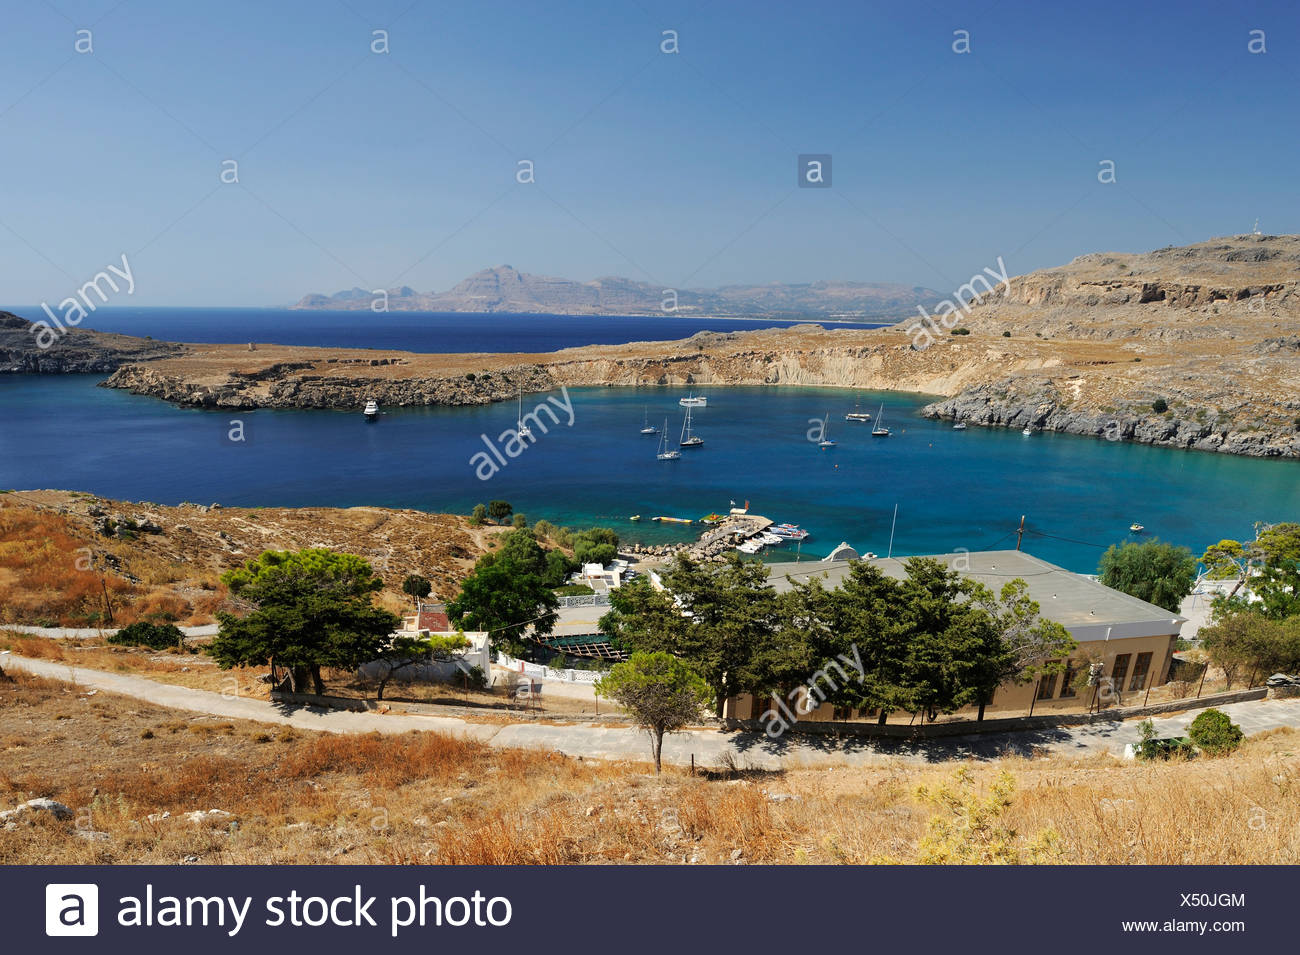 Bay of Lindos, Rhodes island, Greece, Europe - Stock Image